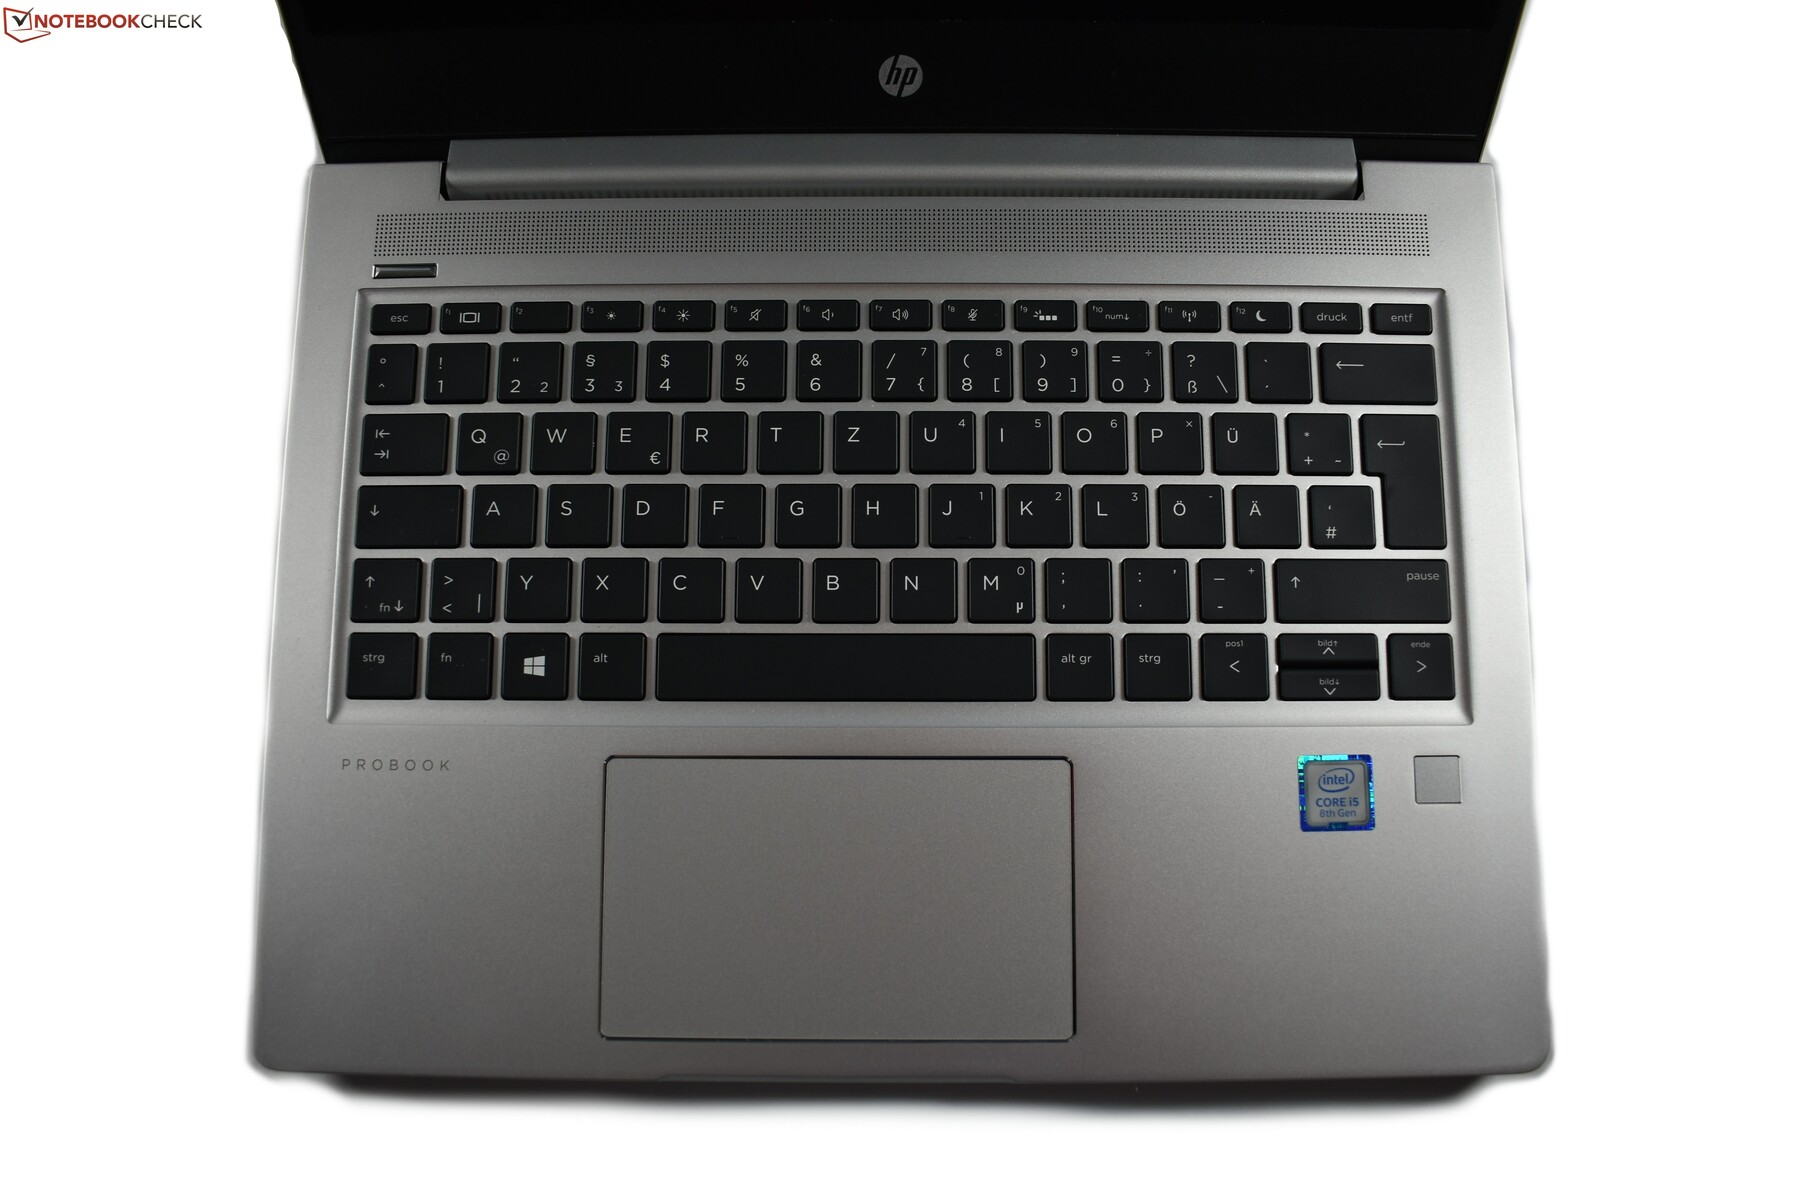 Hp Probook 430 G6 Core I5 8265u 8 Gb Ram 256 Gb Ssd Fhd Laptop Review Notebookcheck Net Reviews